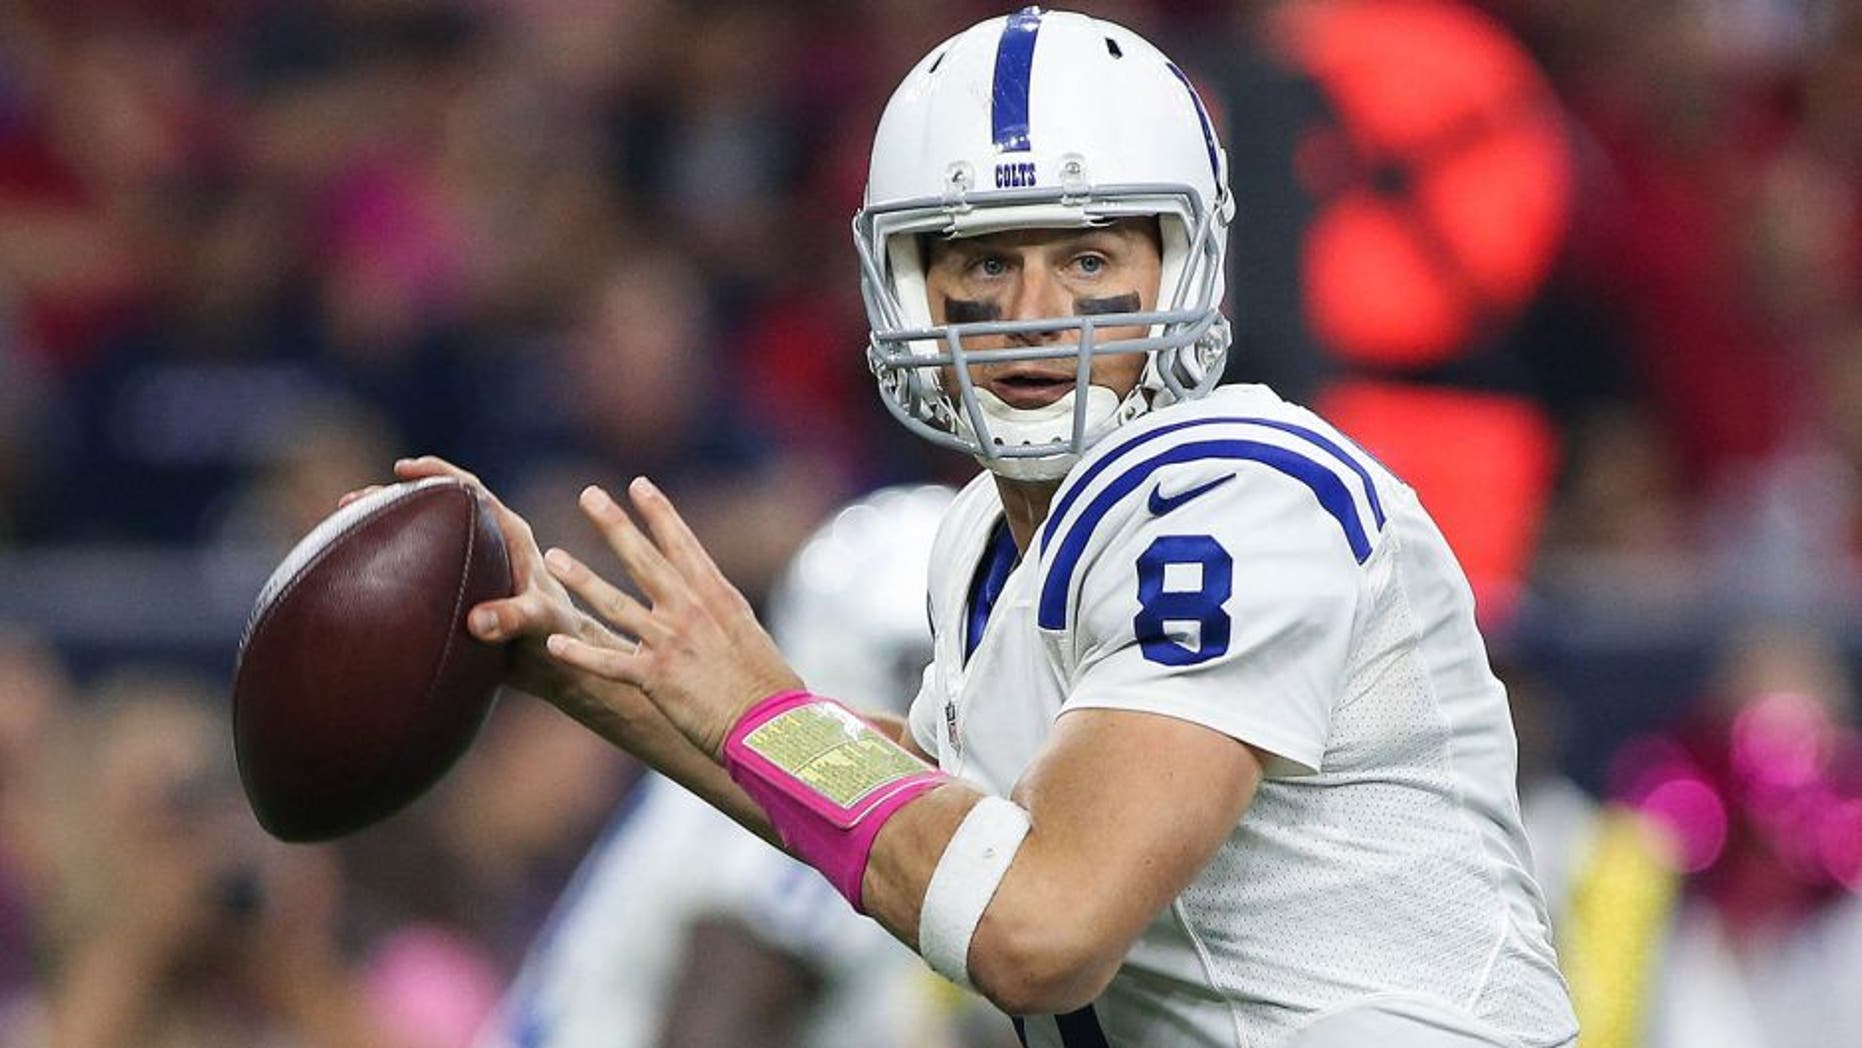 Oct 8, 2015; Houston, TX, USA; Indianapolis Colts quarterback Matt Hasselbeck (8) attempts a pass during the game against the Houston Texans at NRG Stadium. Mandatory Credit: Troy Taormina-USA TODAY Sports